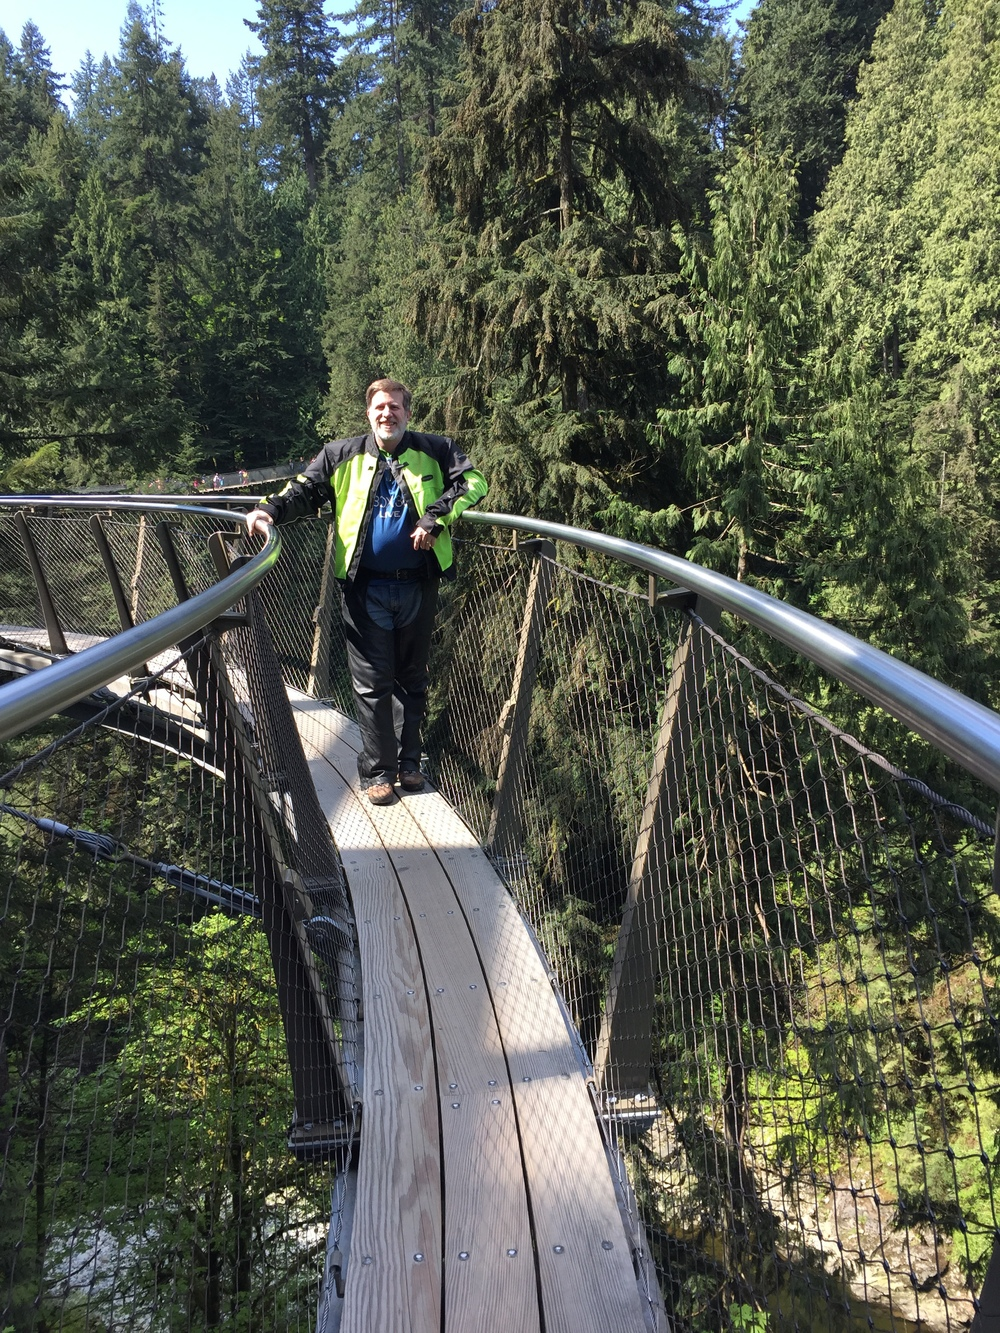 Steve on the suspension bridge.